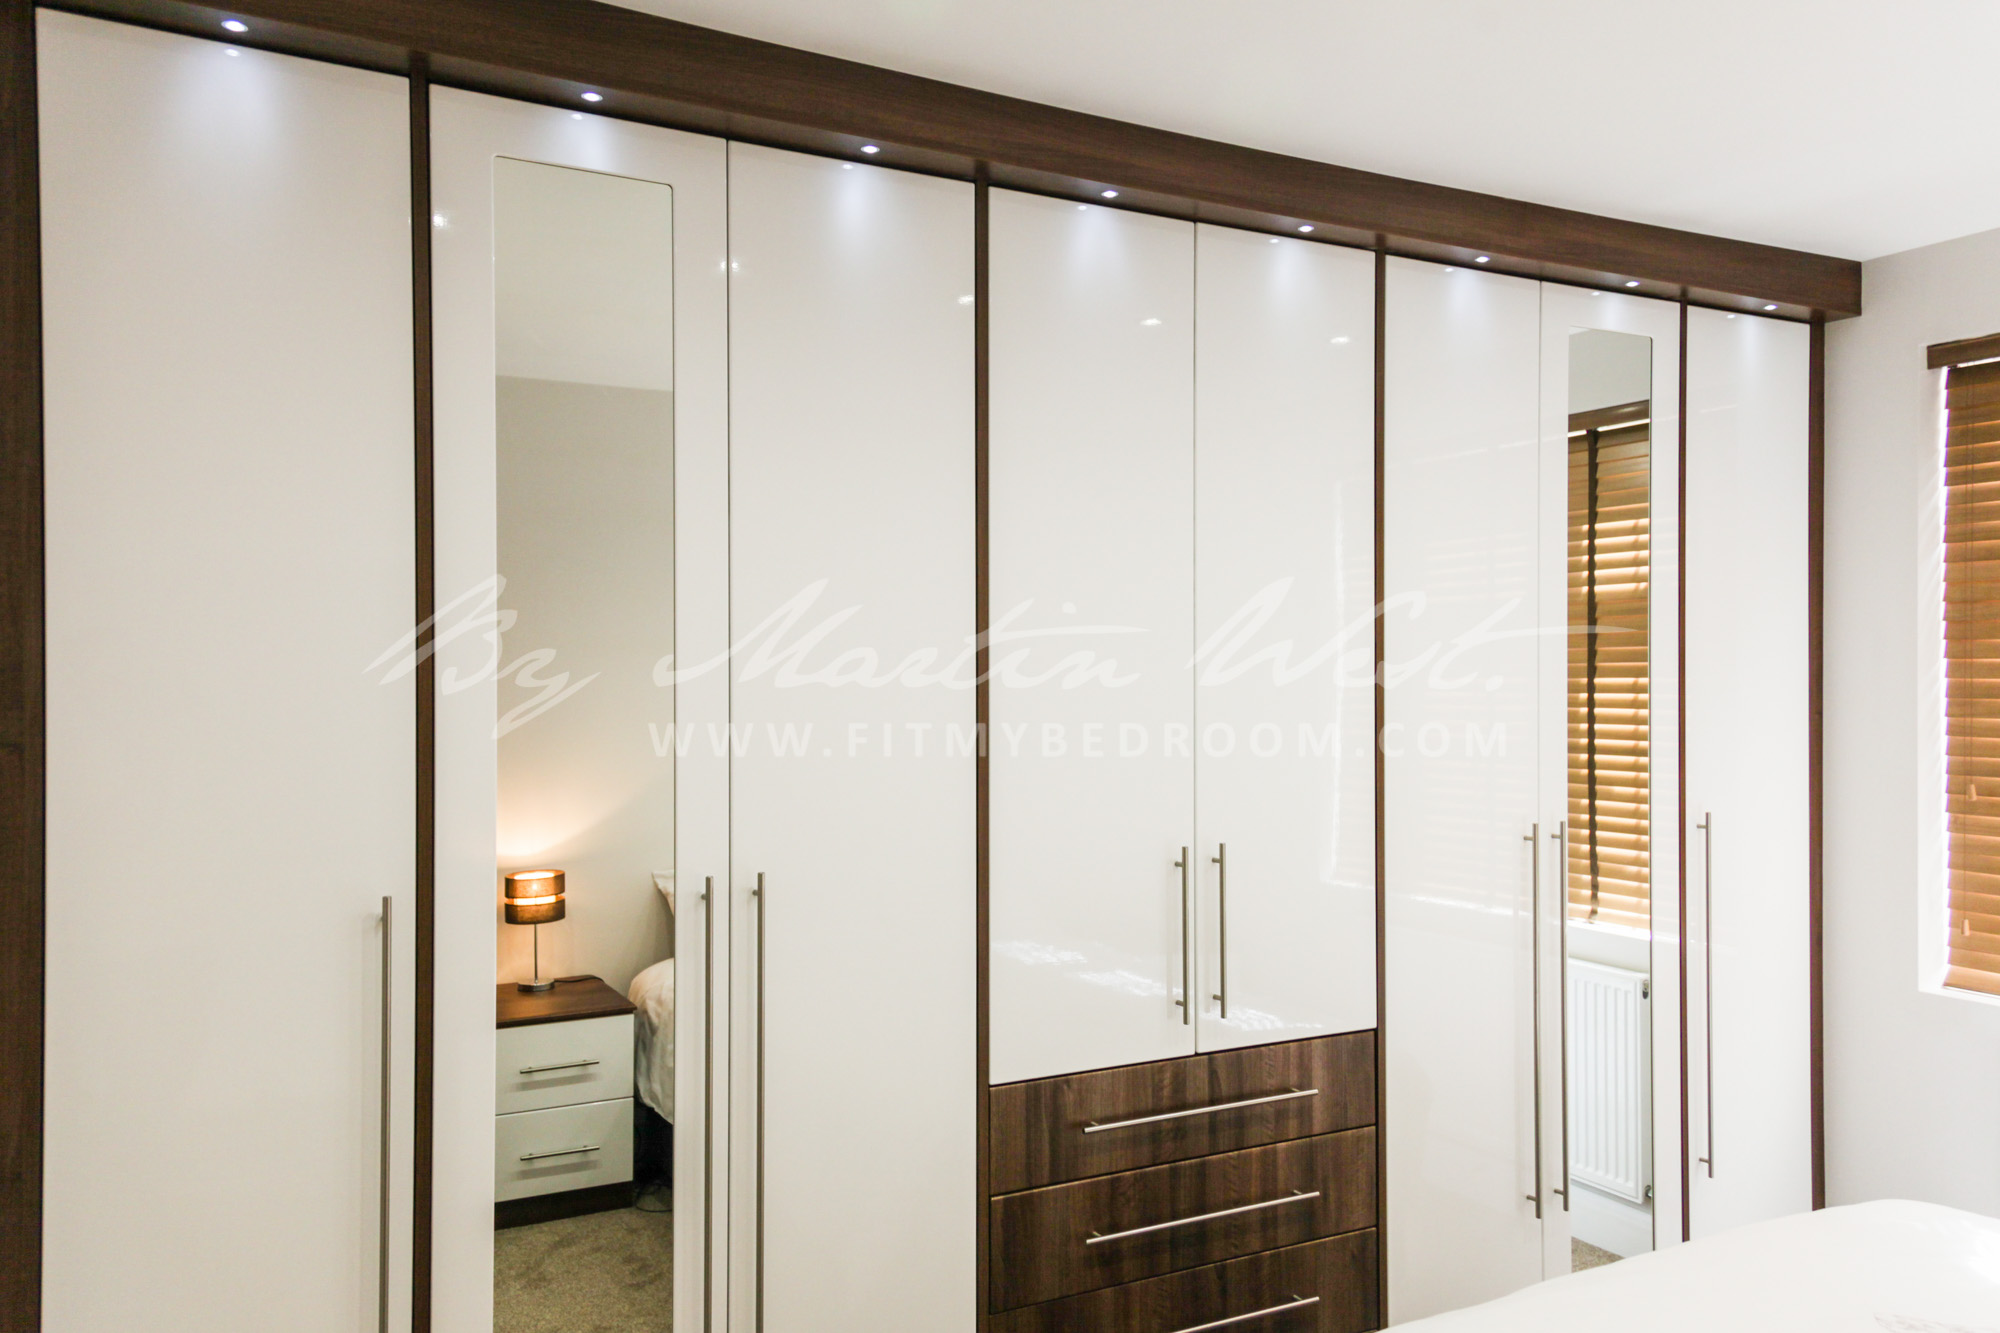 fitted-wardrobes-5 Discount offers with Affordable finance plans